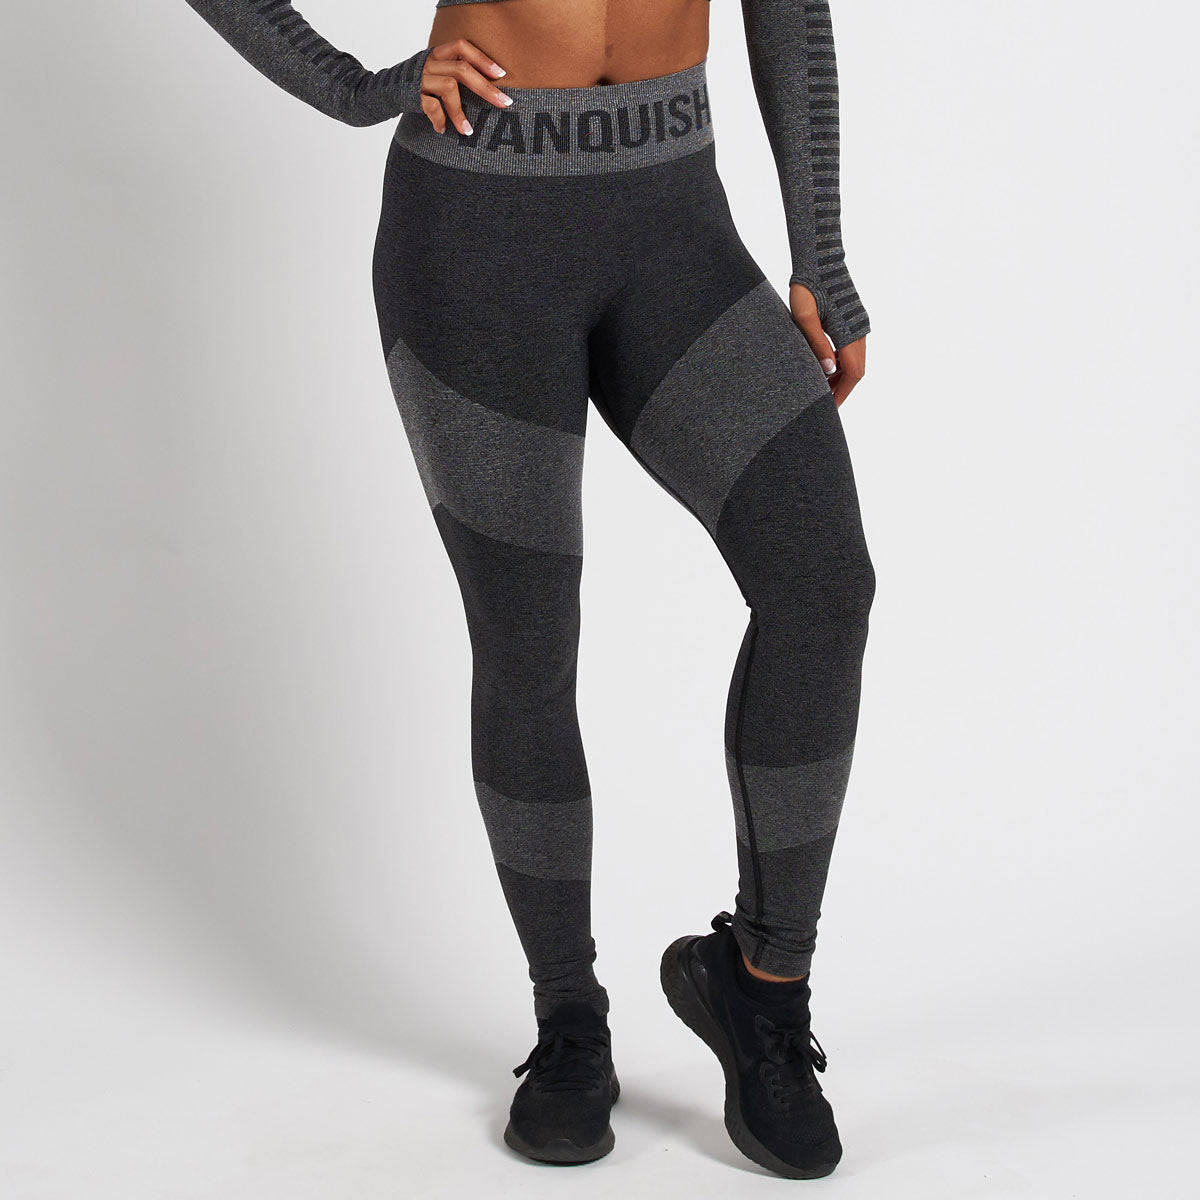 Vanquish Allure Women's Black Seamless Leggings